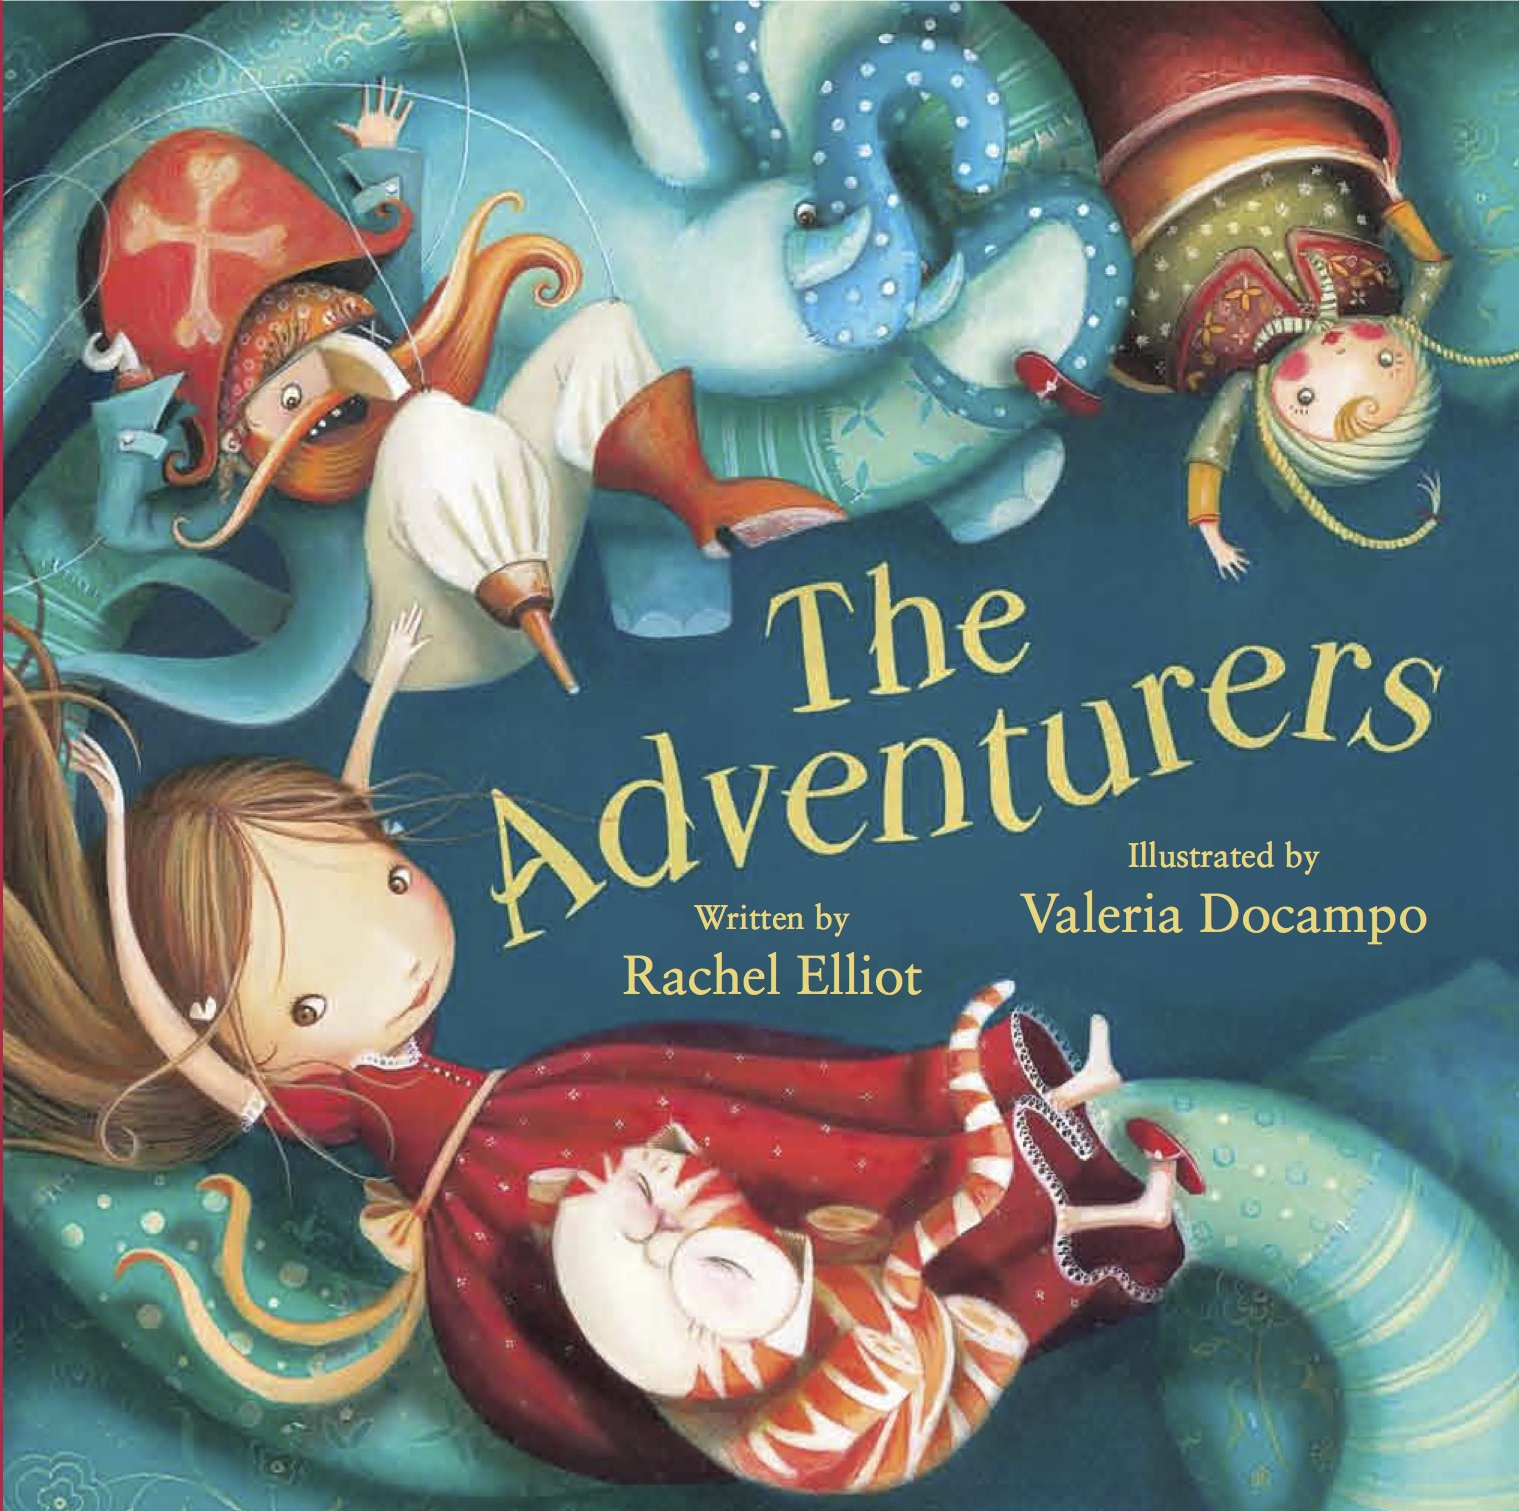 Image result for The adventures by rachel elliot